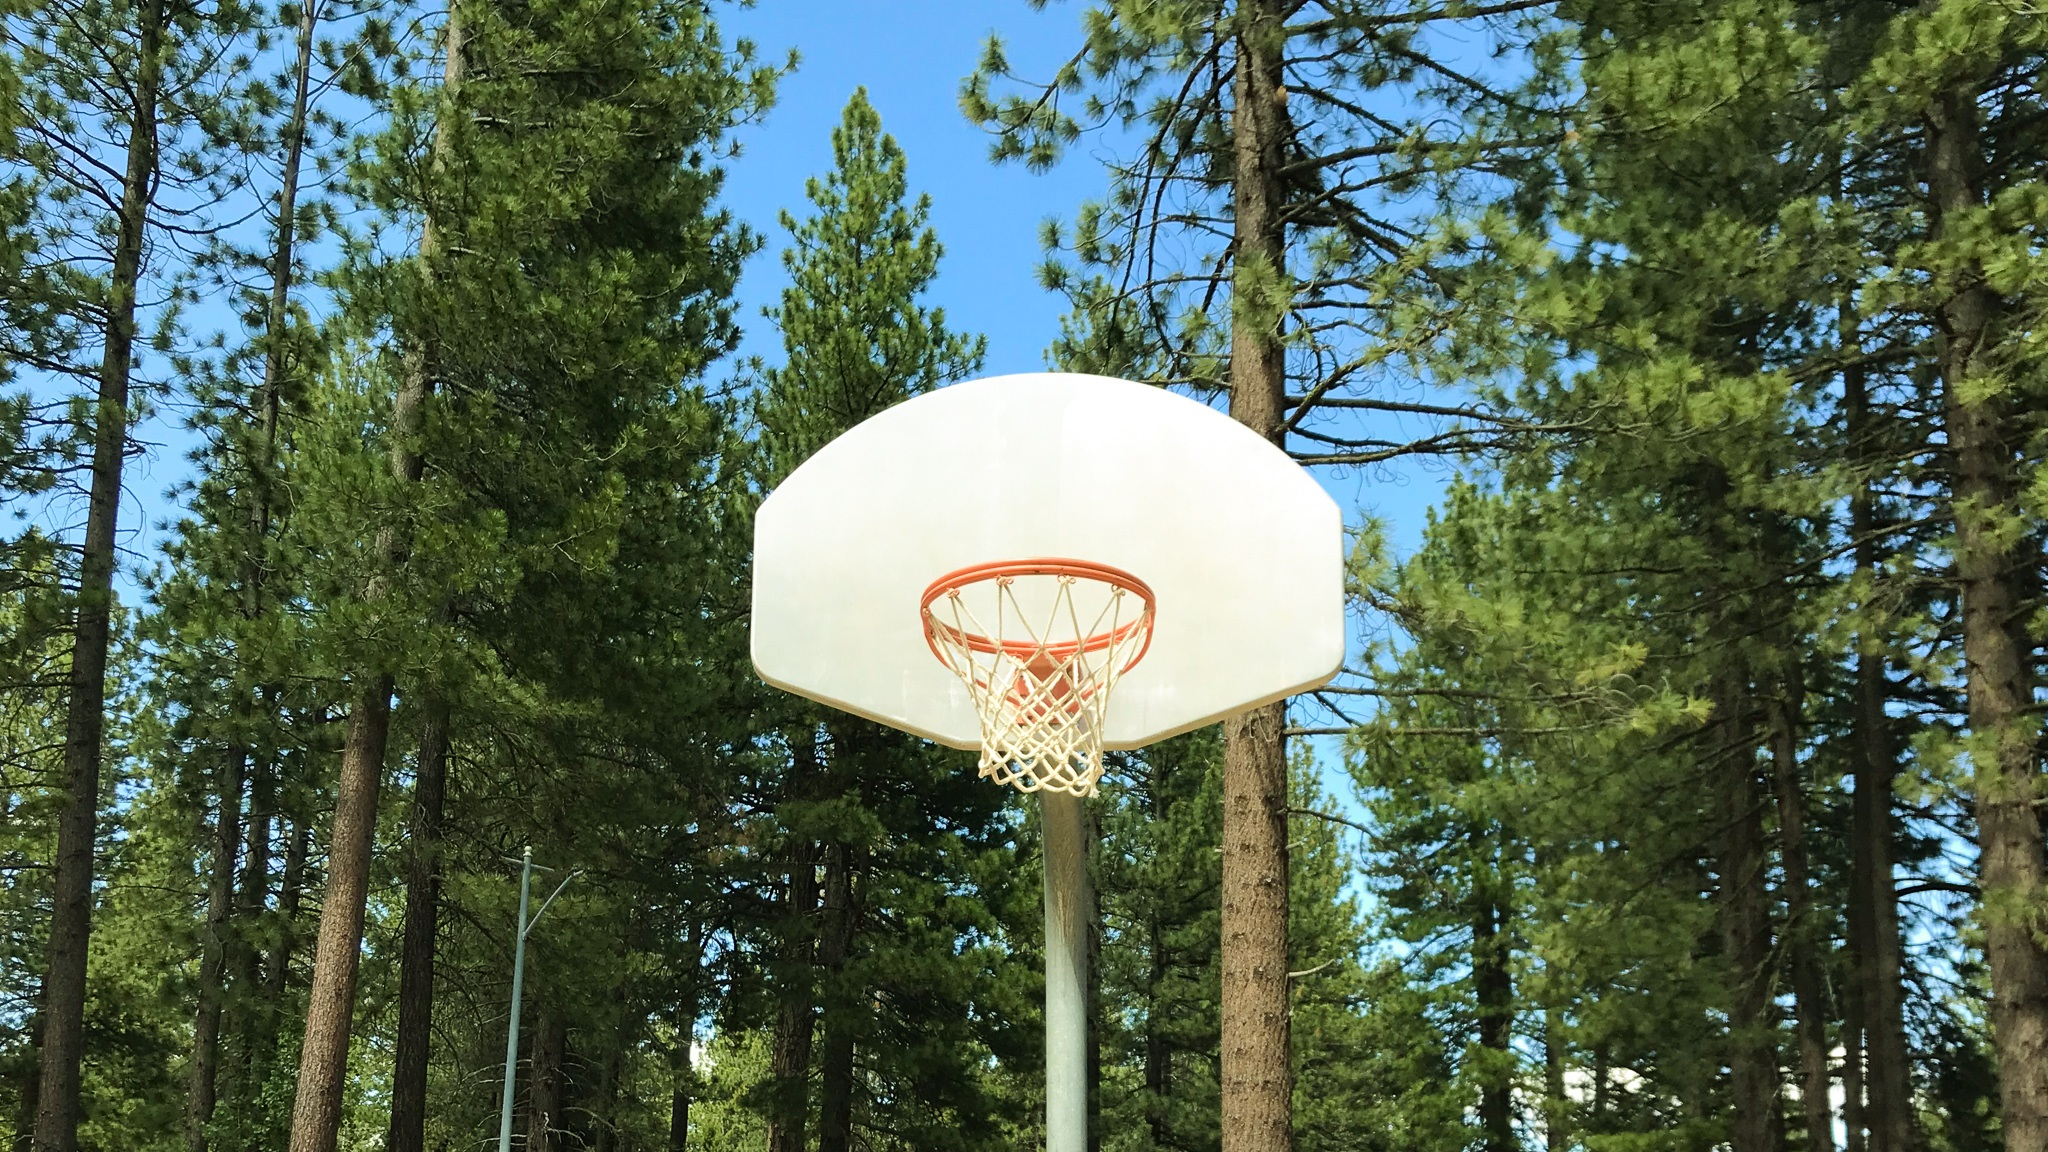 Forest+basketball+court